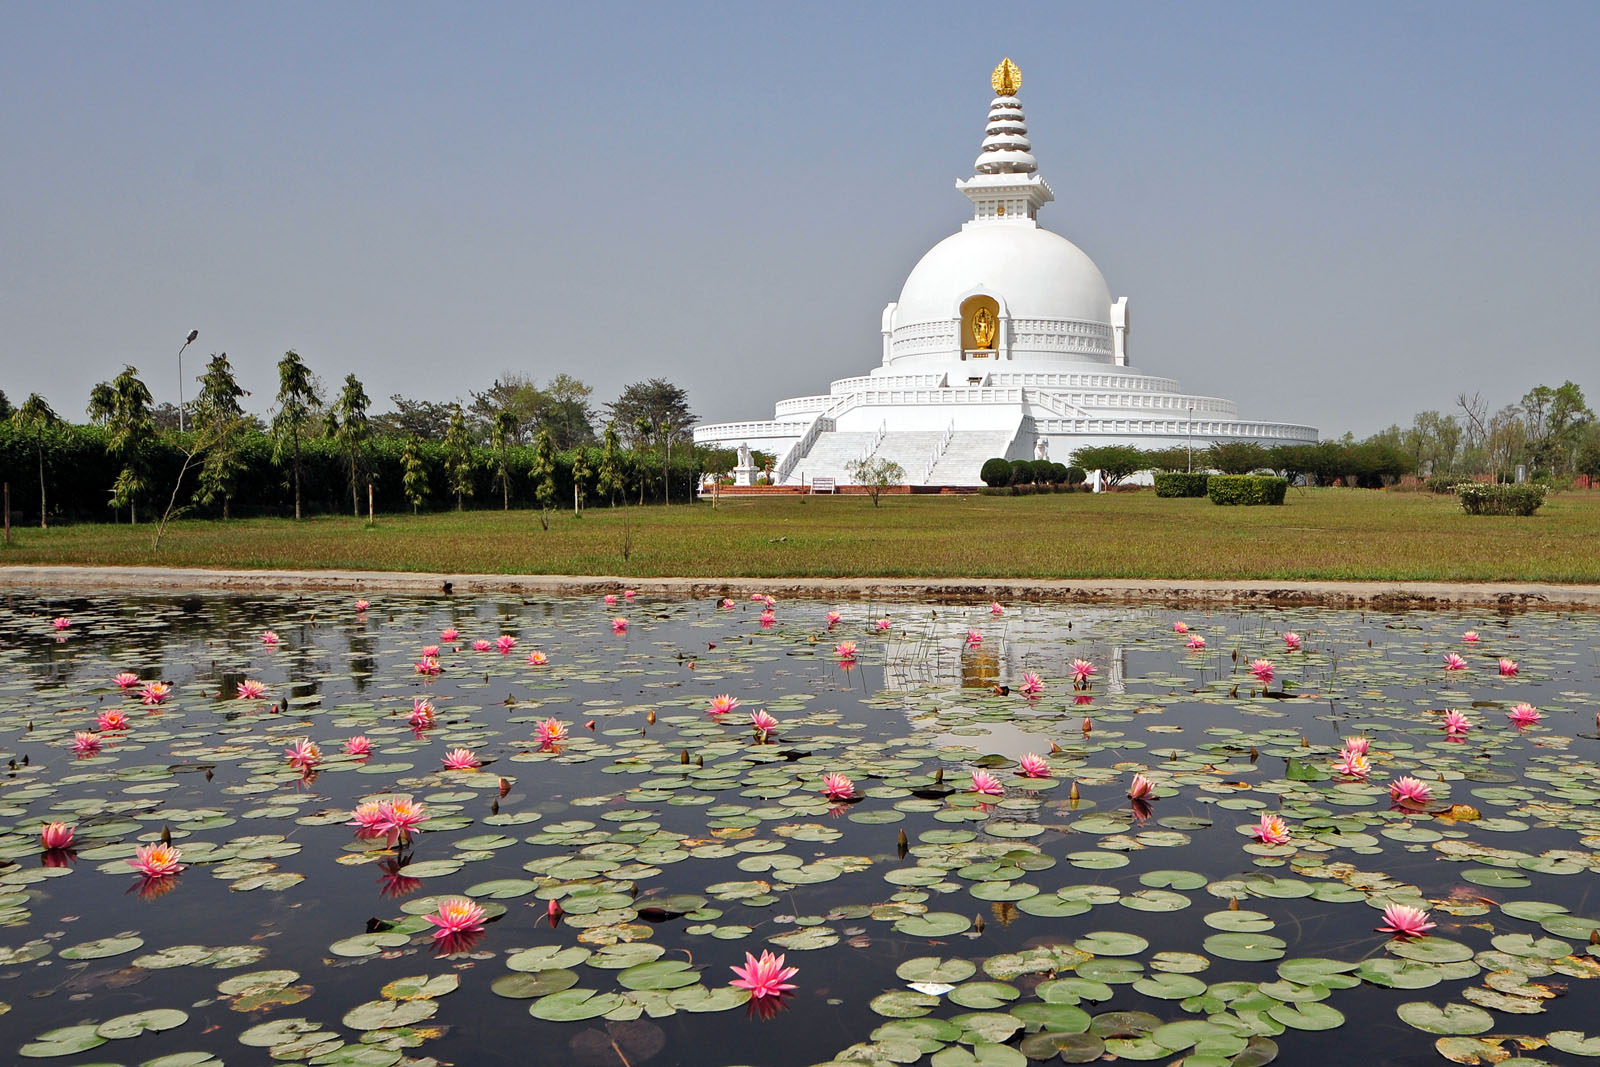 Lord Buddha's birth place